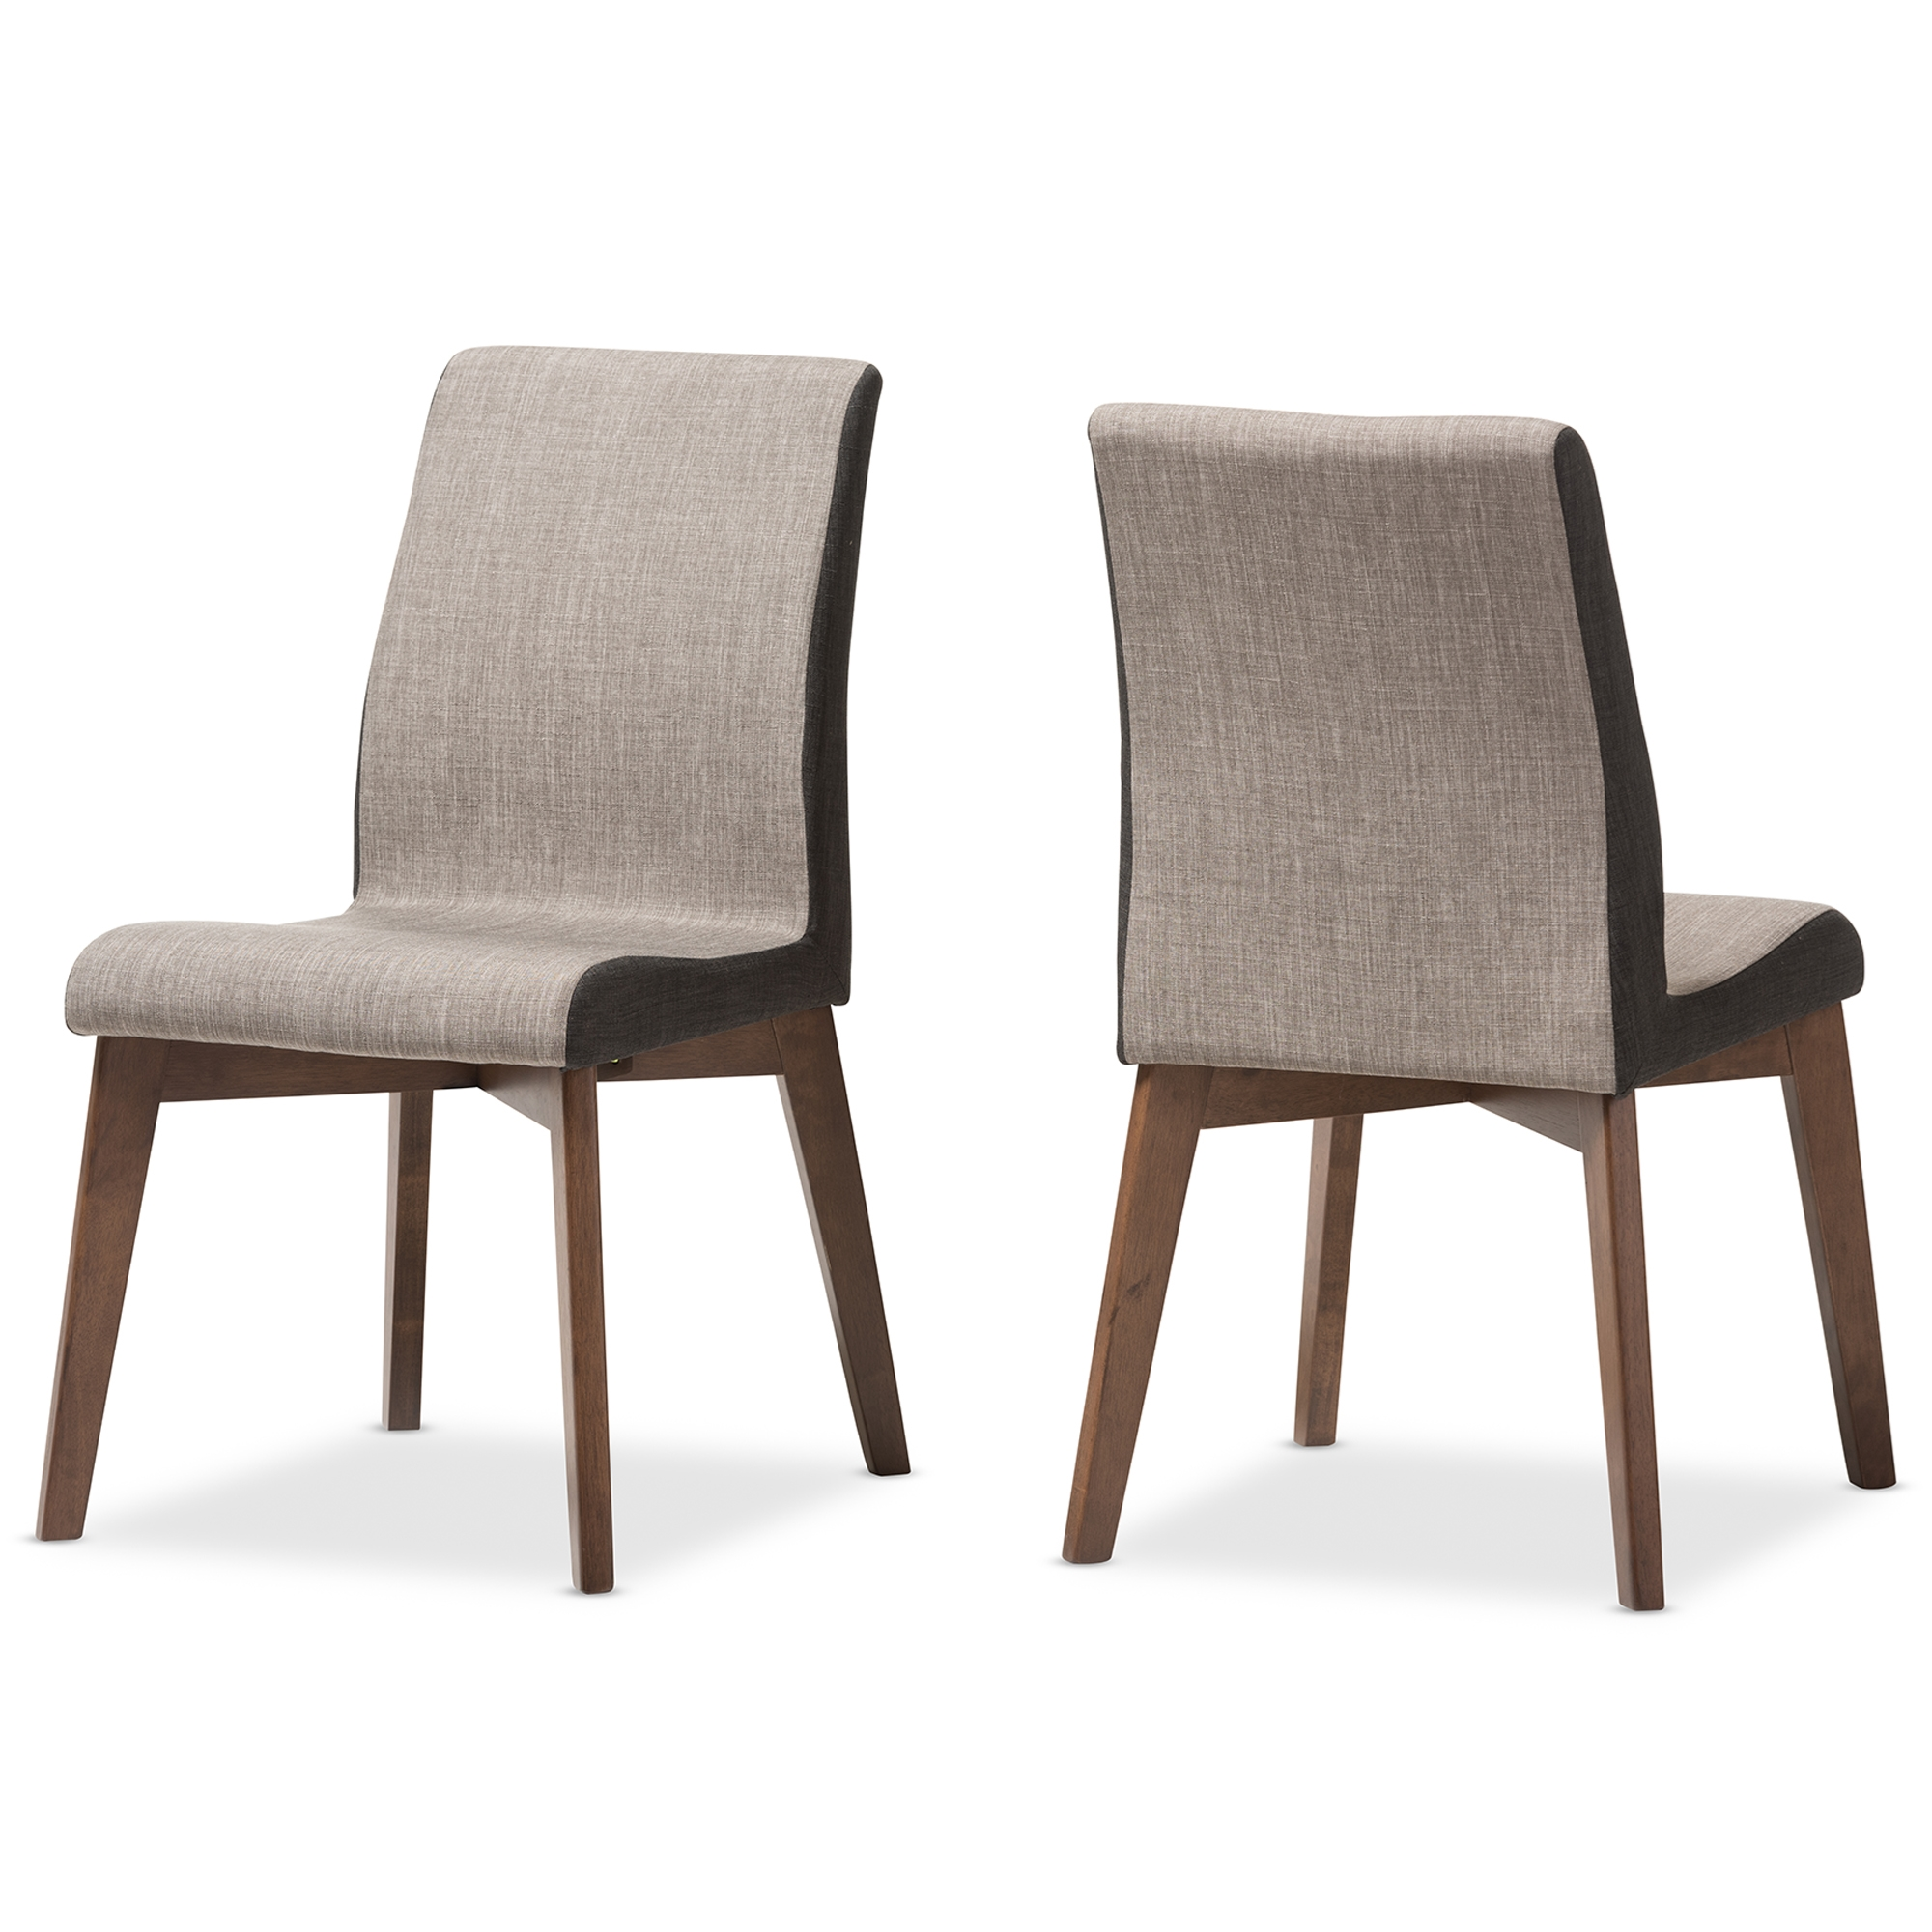 Exceptional Baxton Studio Kimberly Mid Century Modern Beige And Brown Fabric Dining  Chair (Set Of ...